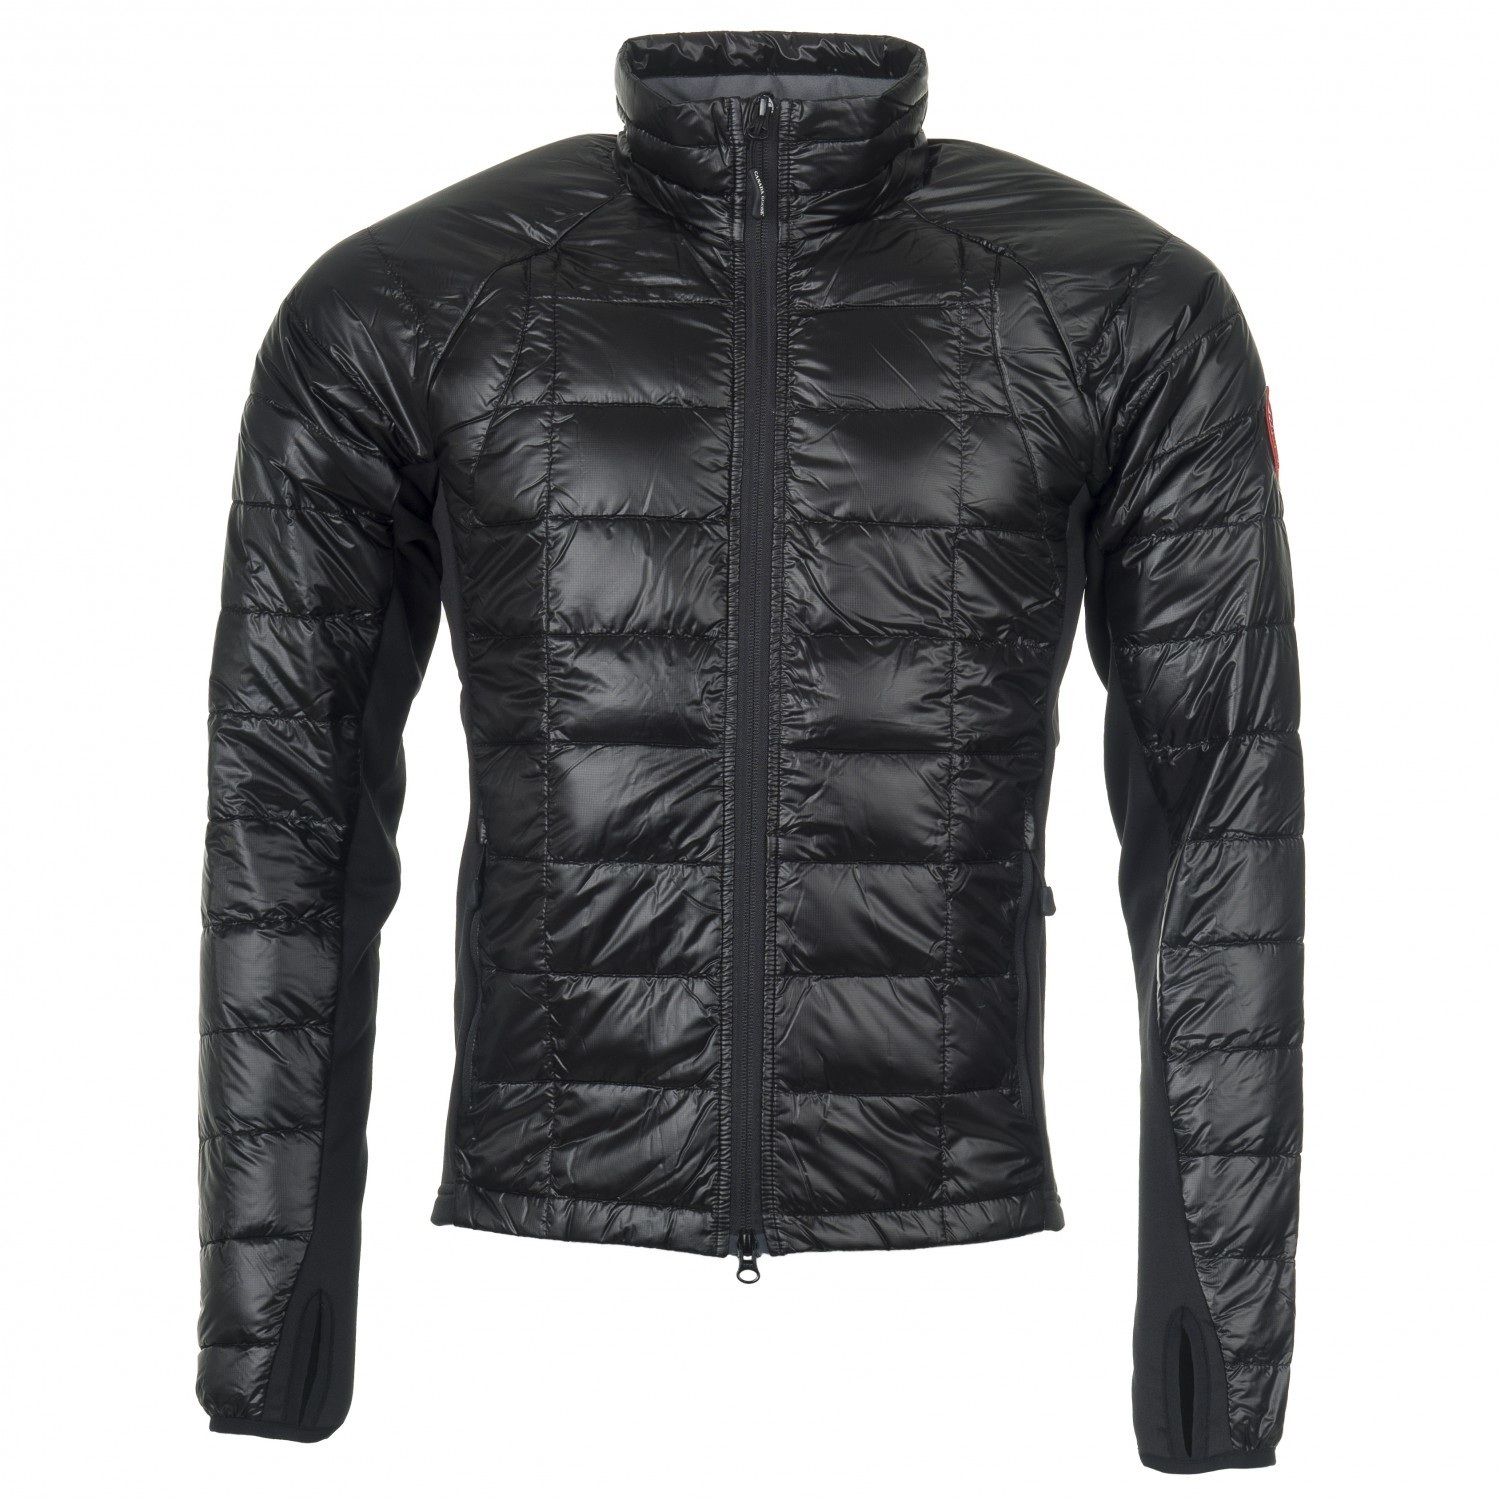 Canada Goose Hybridge Lite Jacket - Daunenjacke Herren ... - photo#14